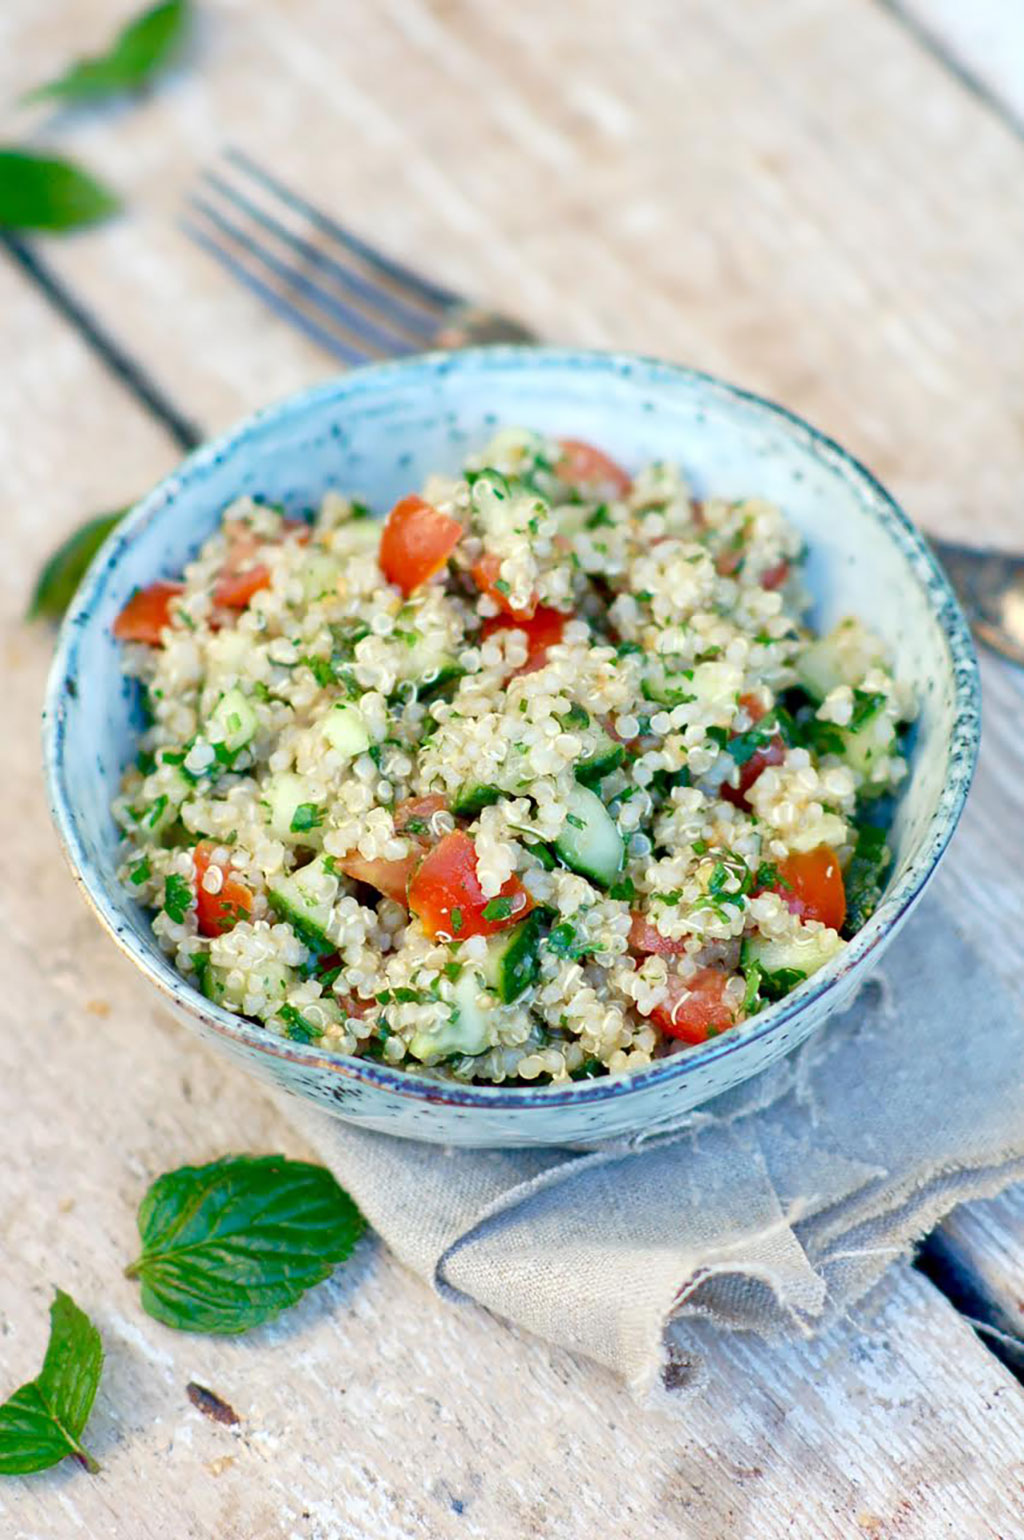 Easy, Healthy Recipe: Tabbouleh with Quinoa